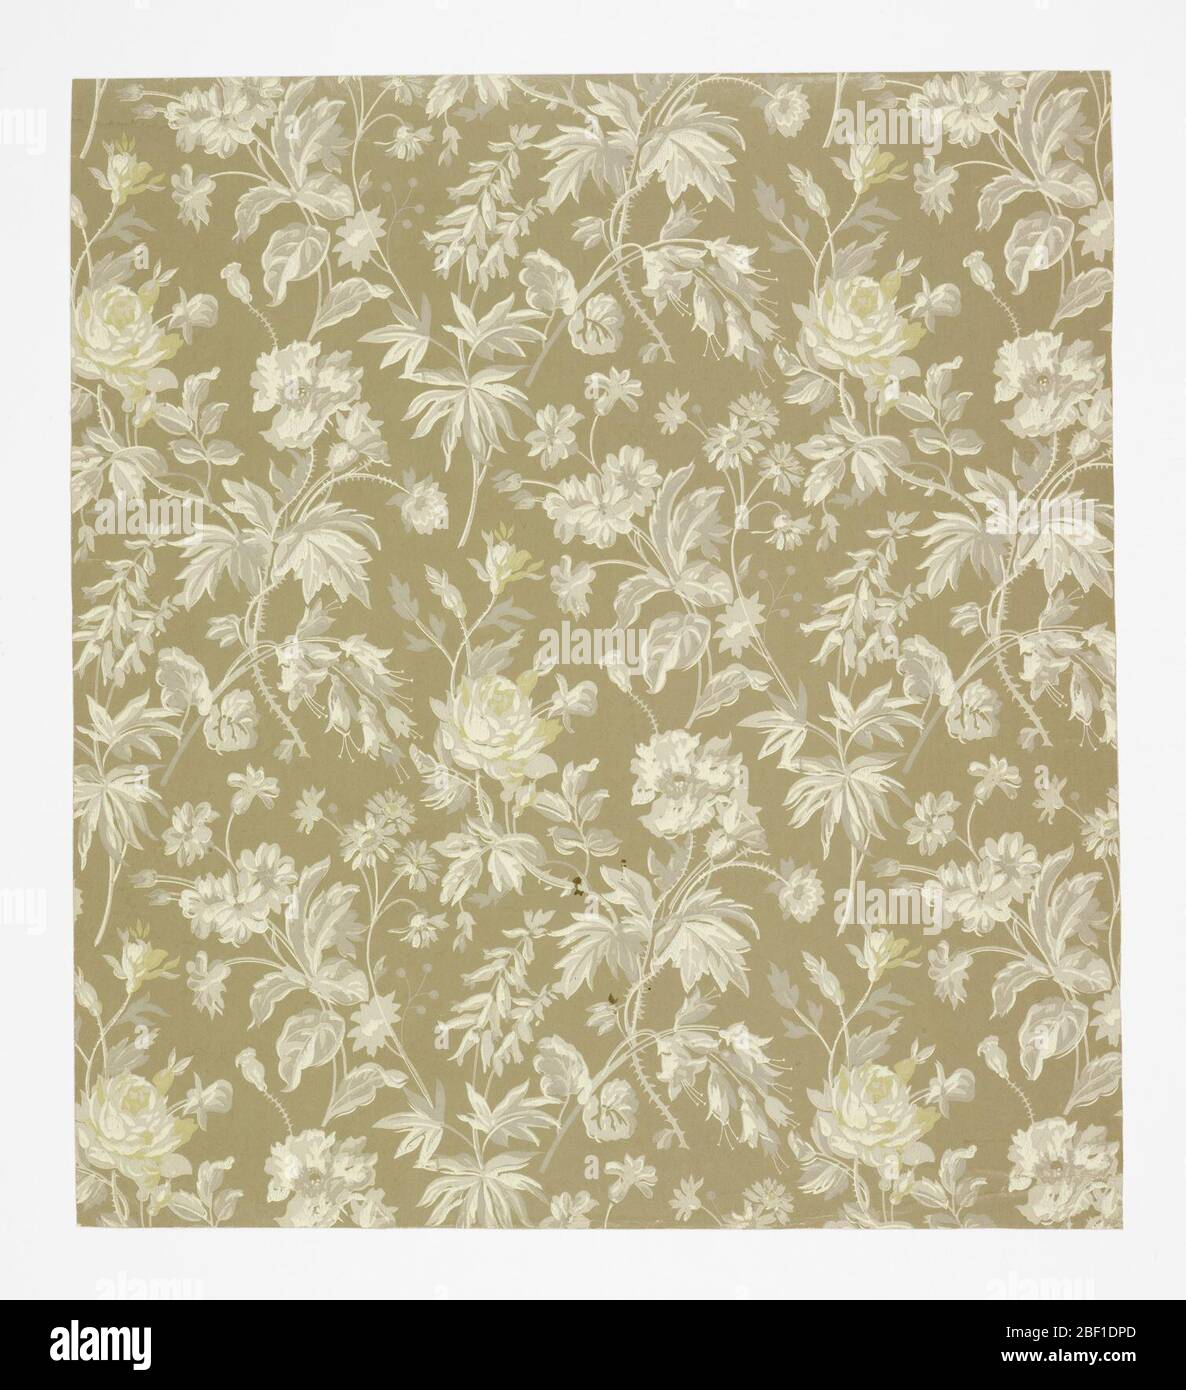 Sidewall Aesthetic All Over Pattern Of Sprigs Of Roses And Other Flowers Three Motifs Arranged In A Diamond Shaped Repeat In Off Set Columns Greyscale Coloration With Naturalistic Block Shading Ground Is Light Brown Stock